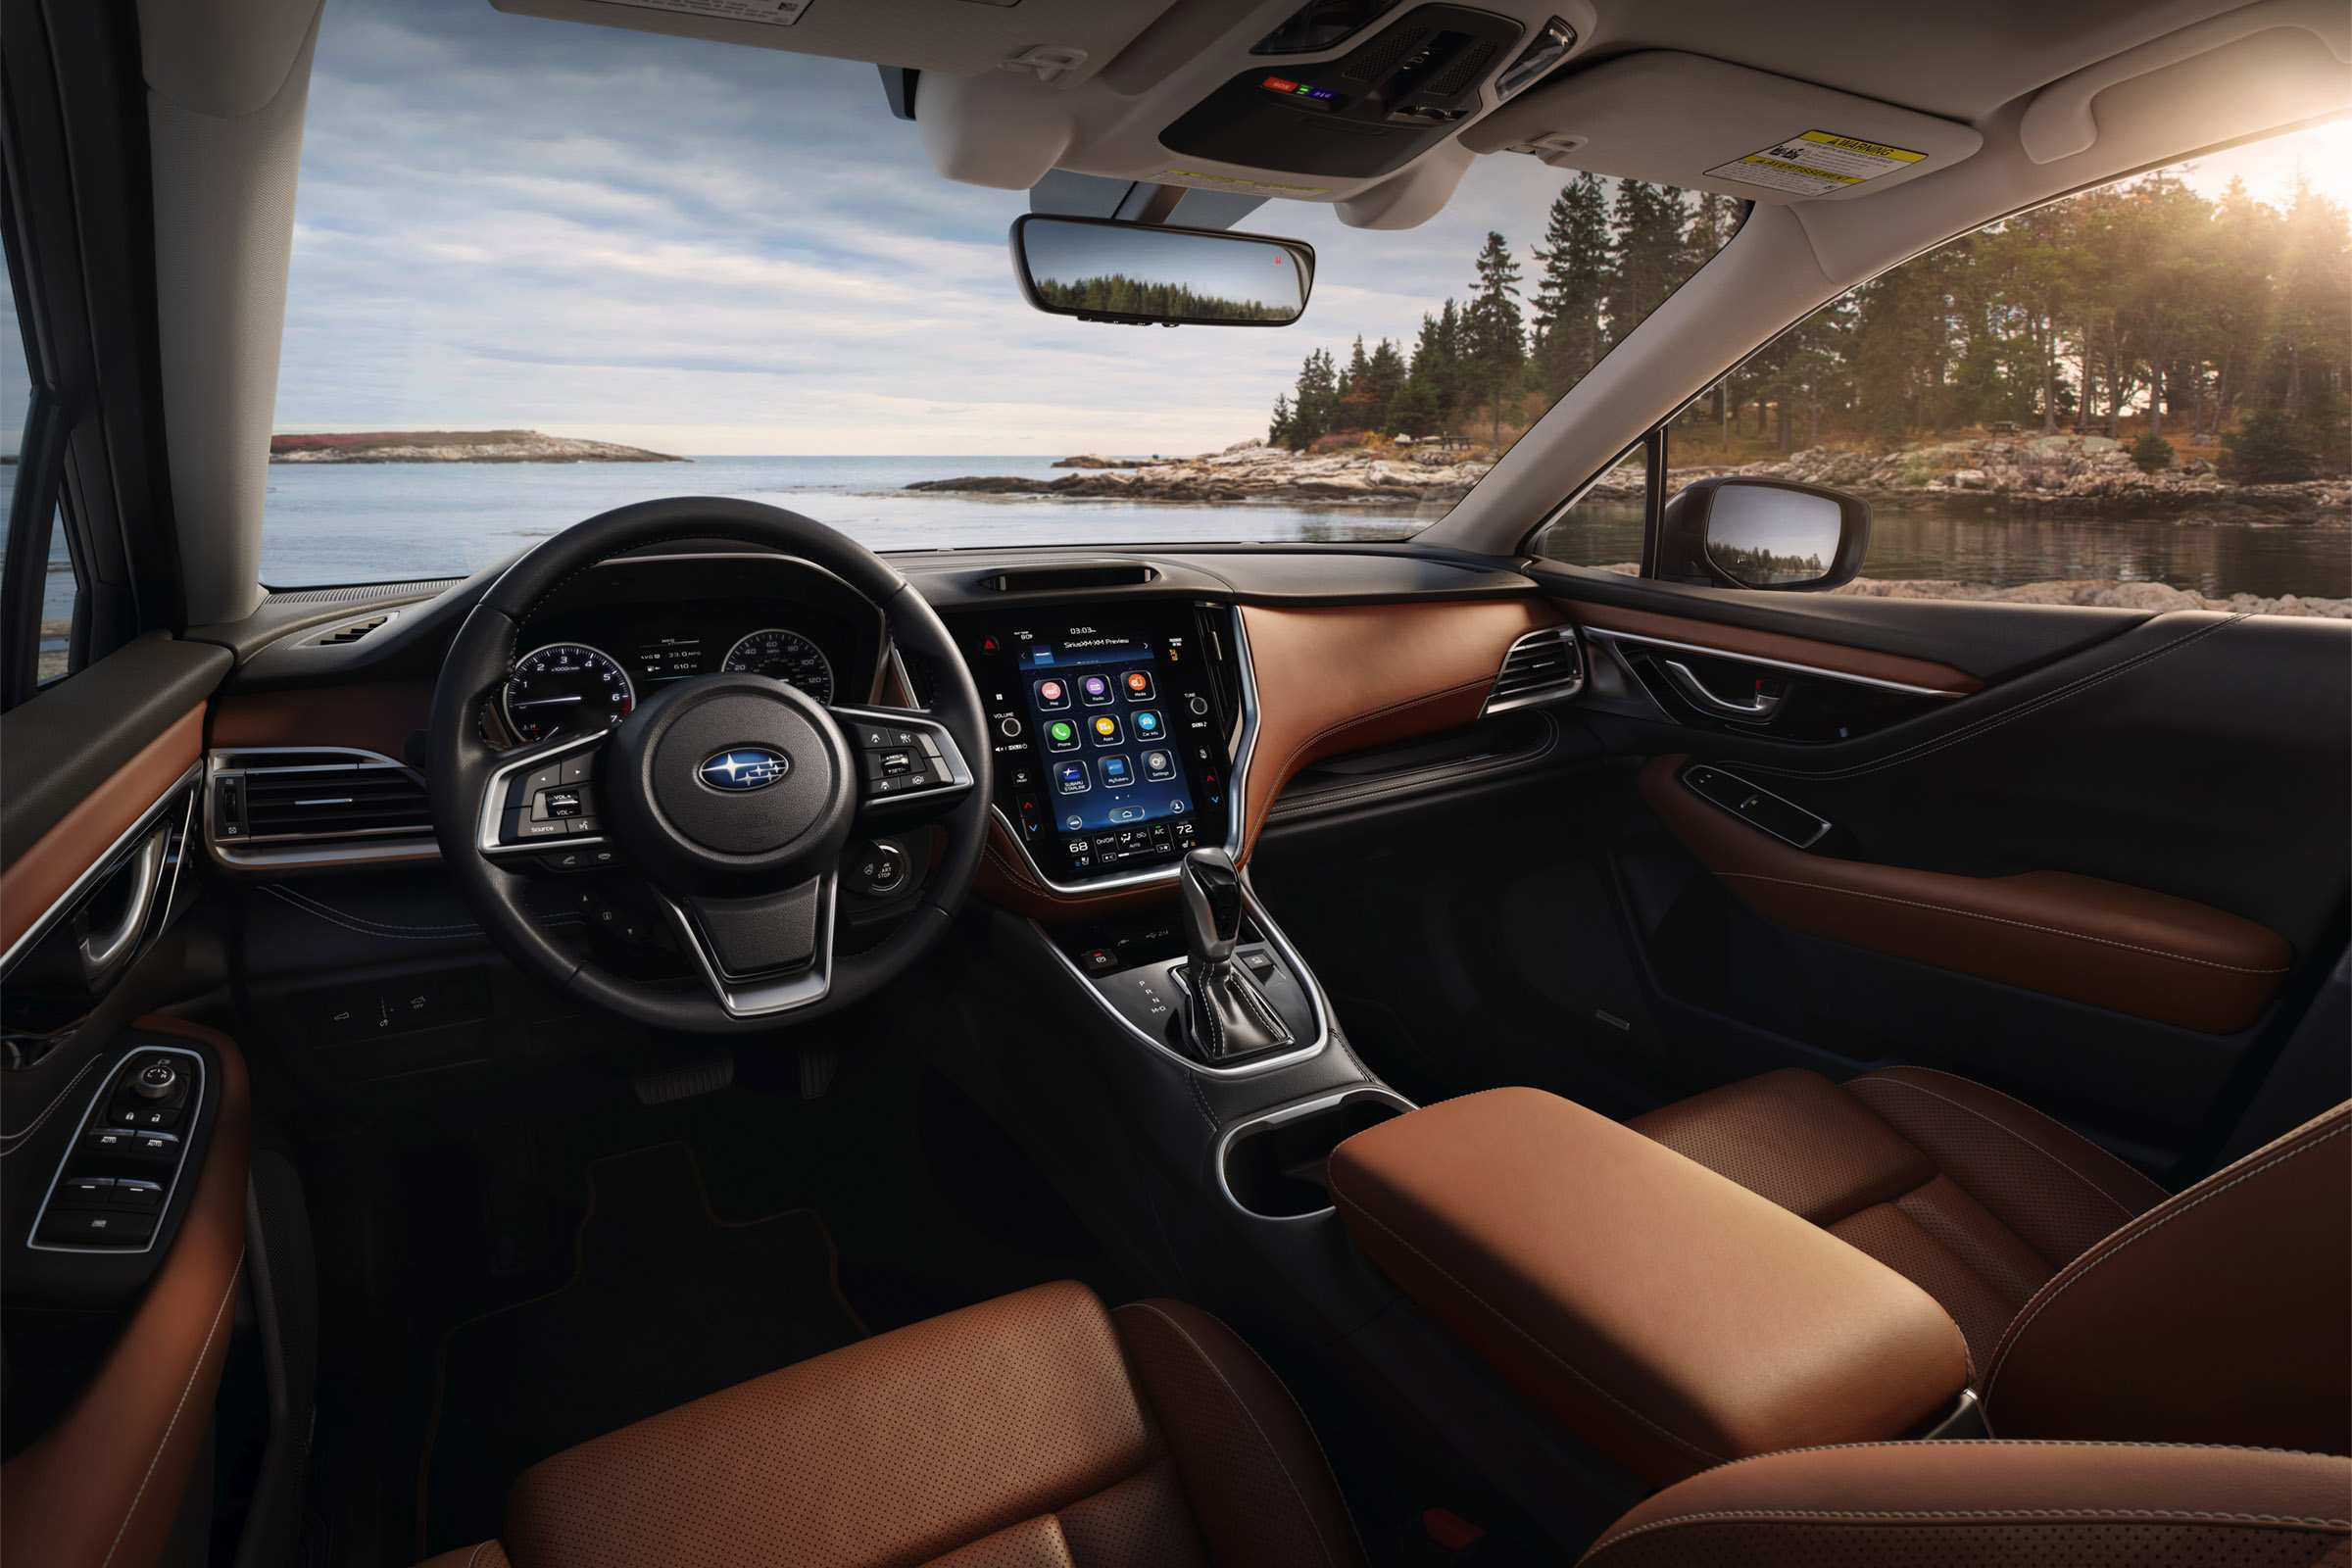 57 All New 2020 Subaru Outback Mpg Performance And New Engine